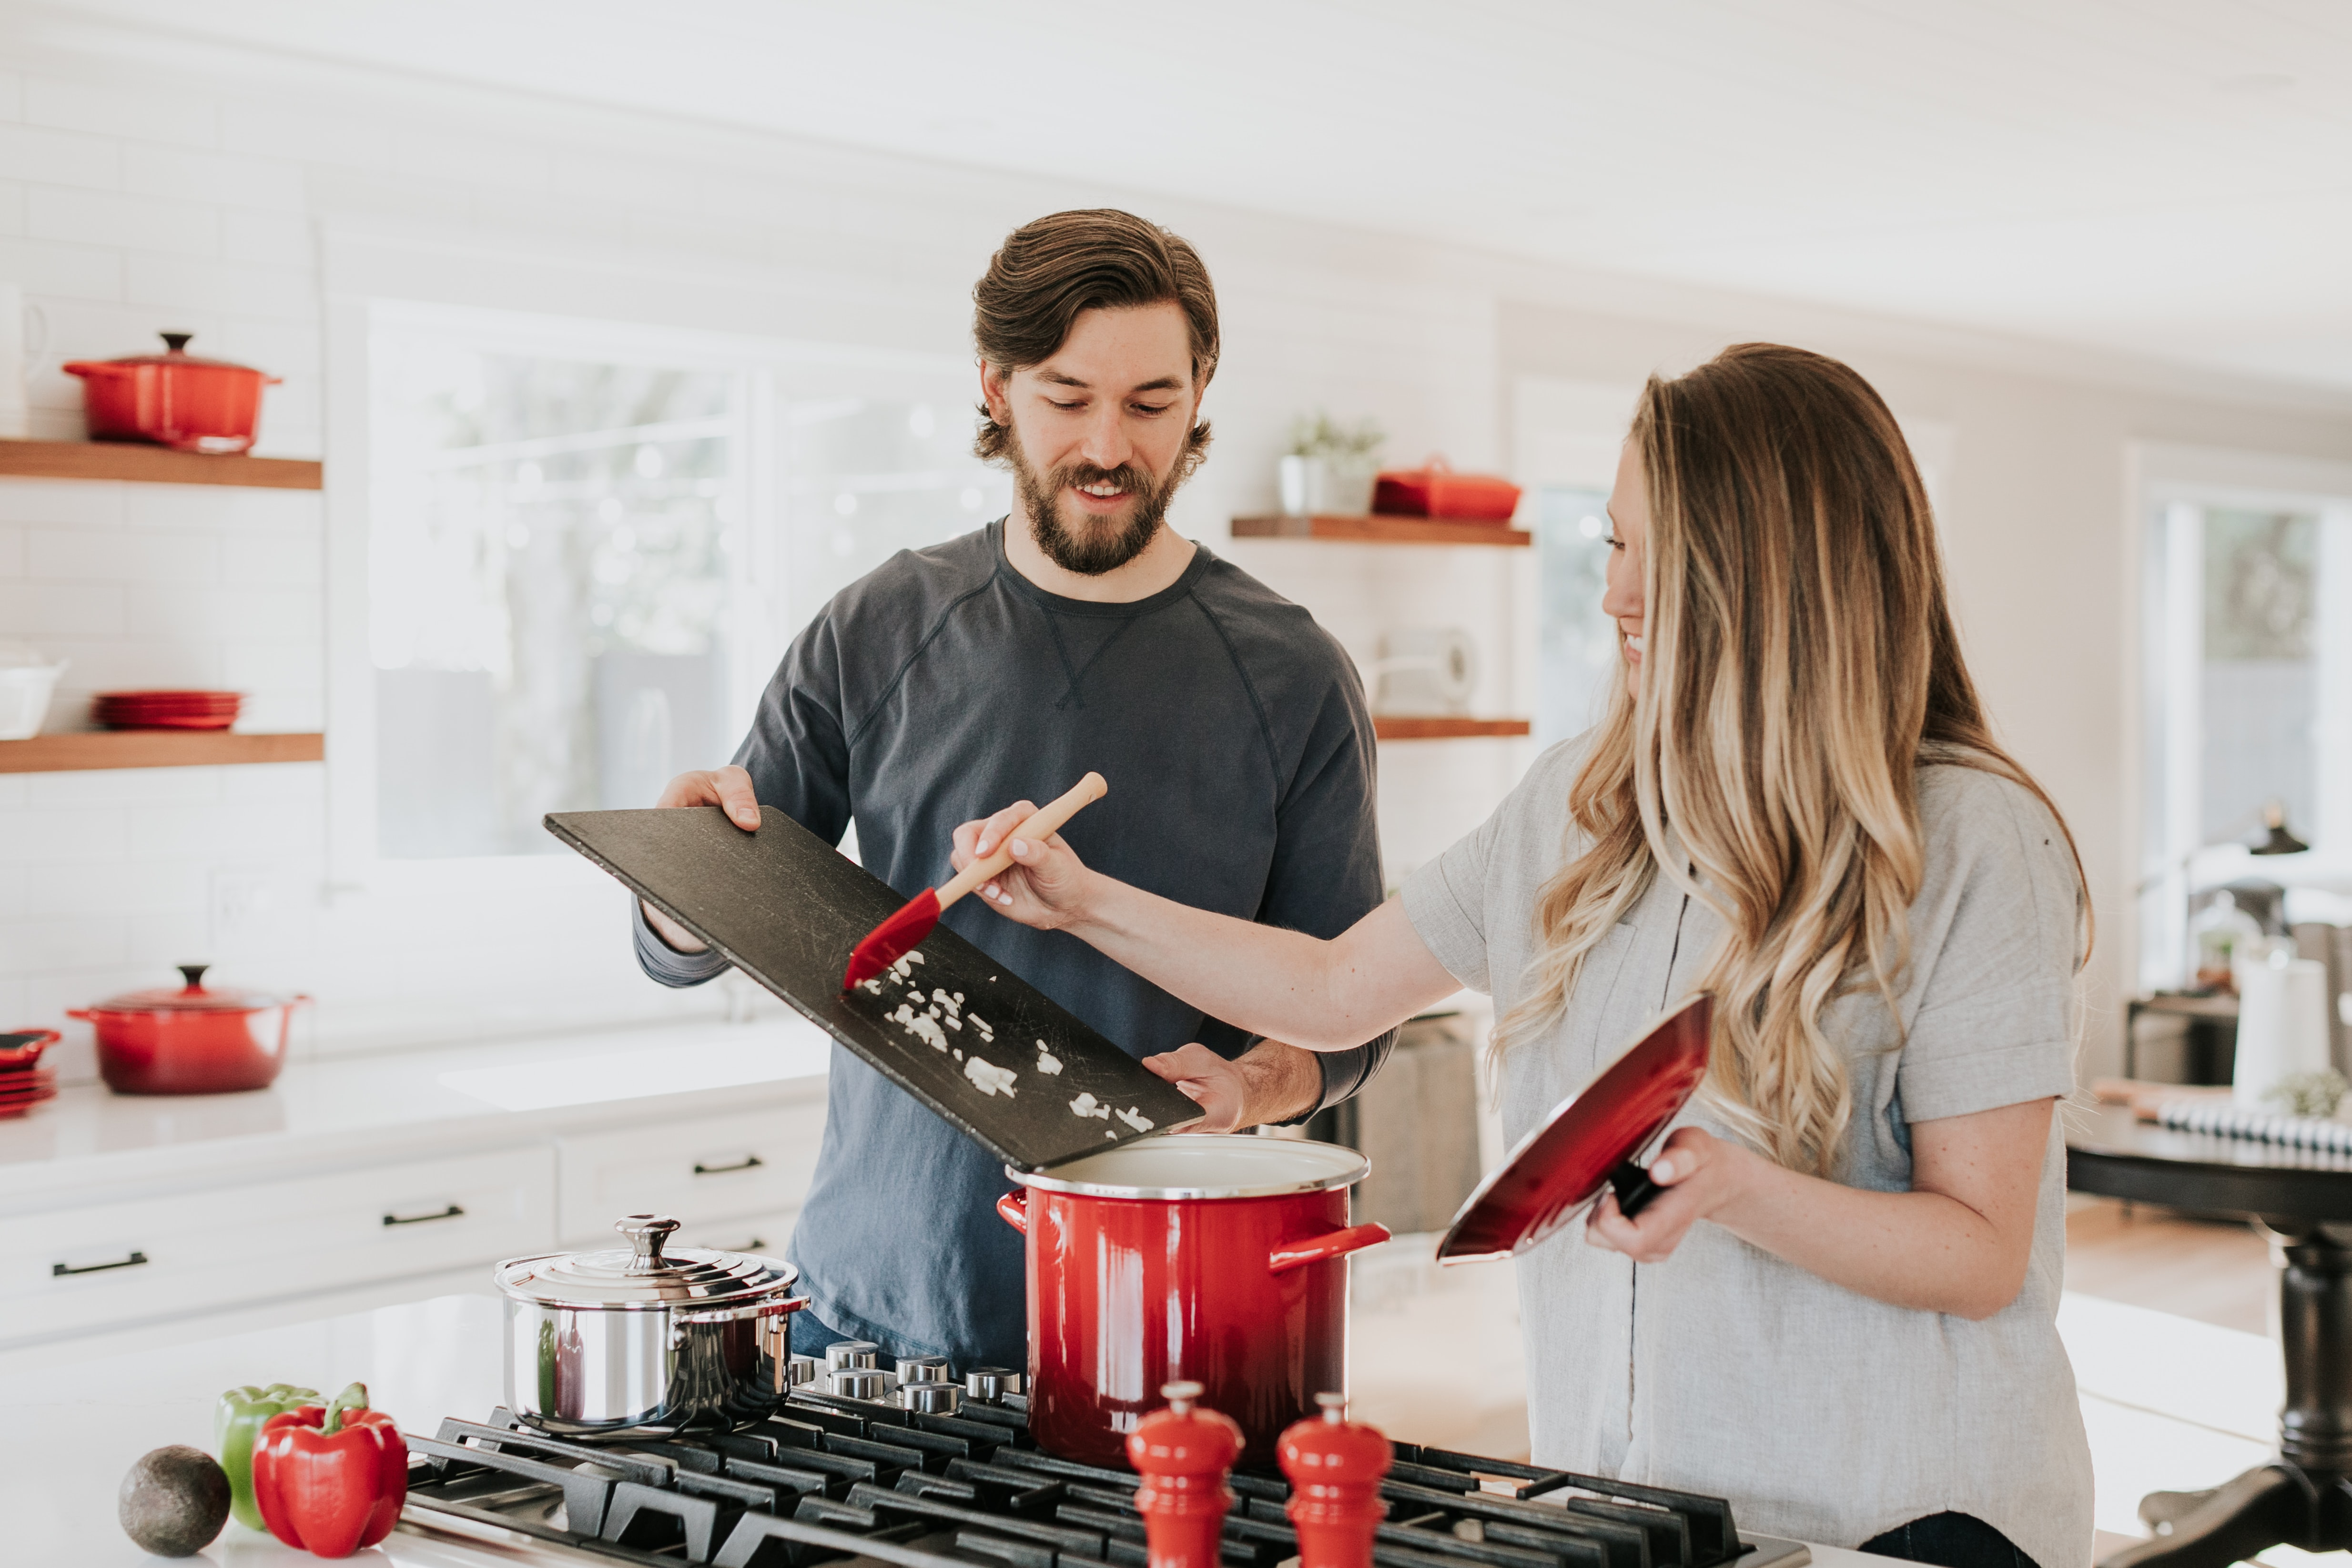 Changes at home affect job performance